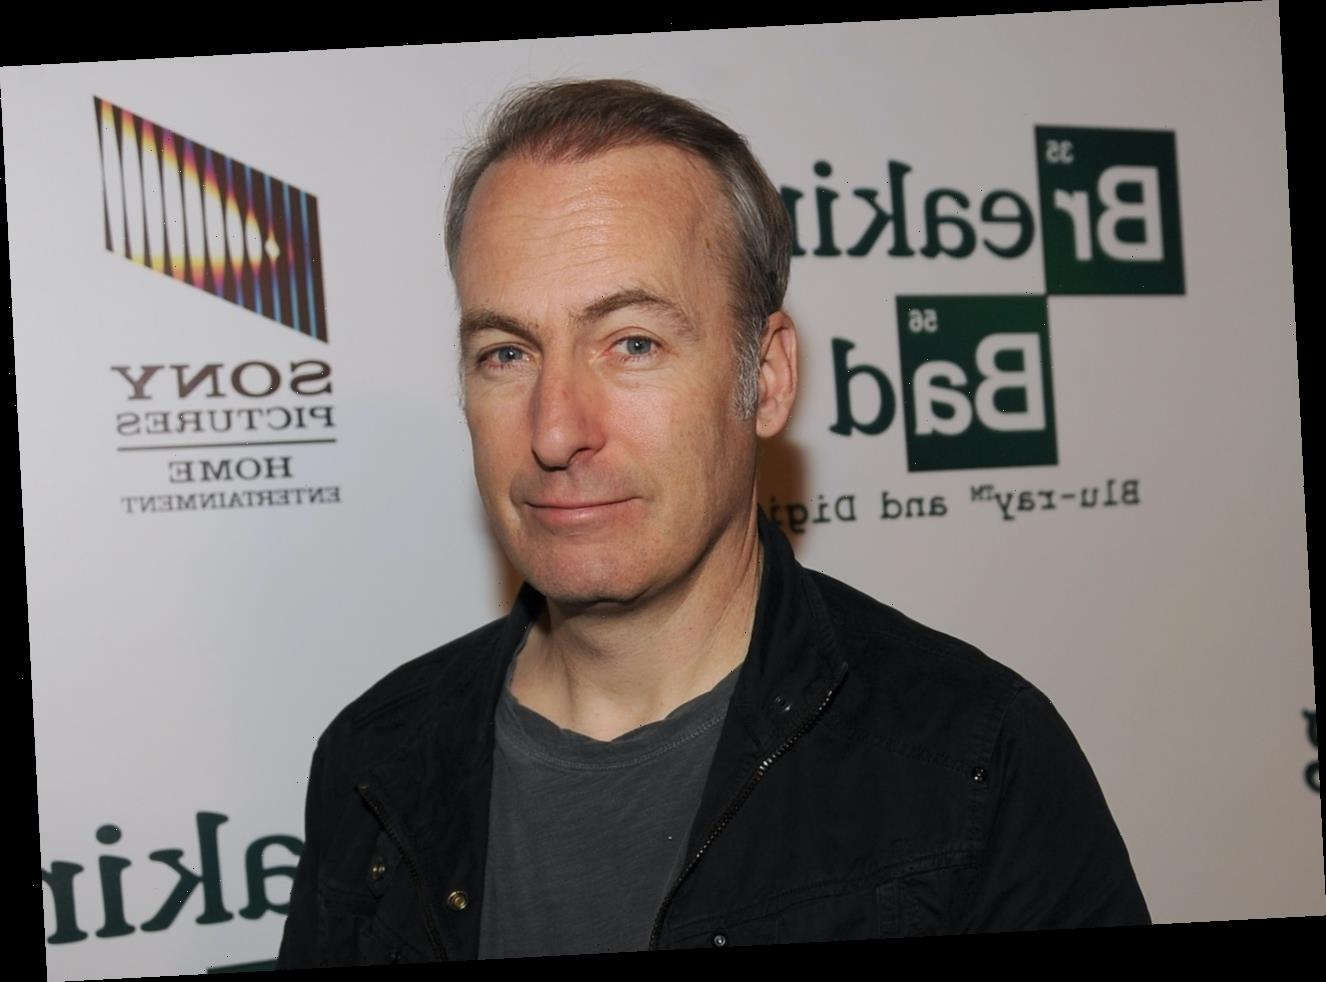 'Better Call Saul' Star Bob Odenkirk Had Never Watched 'Breaking Bad' When Saul Goodman Role Was Offered To Him